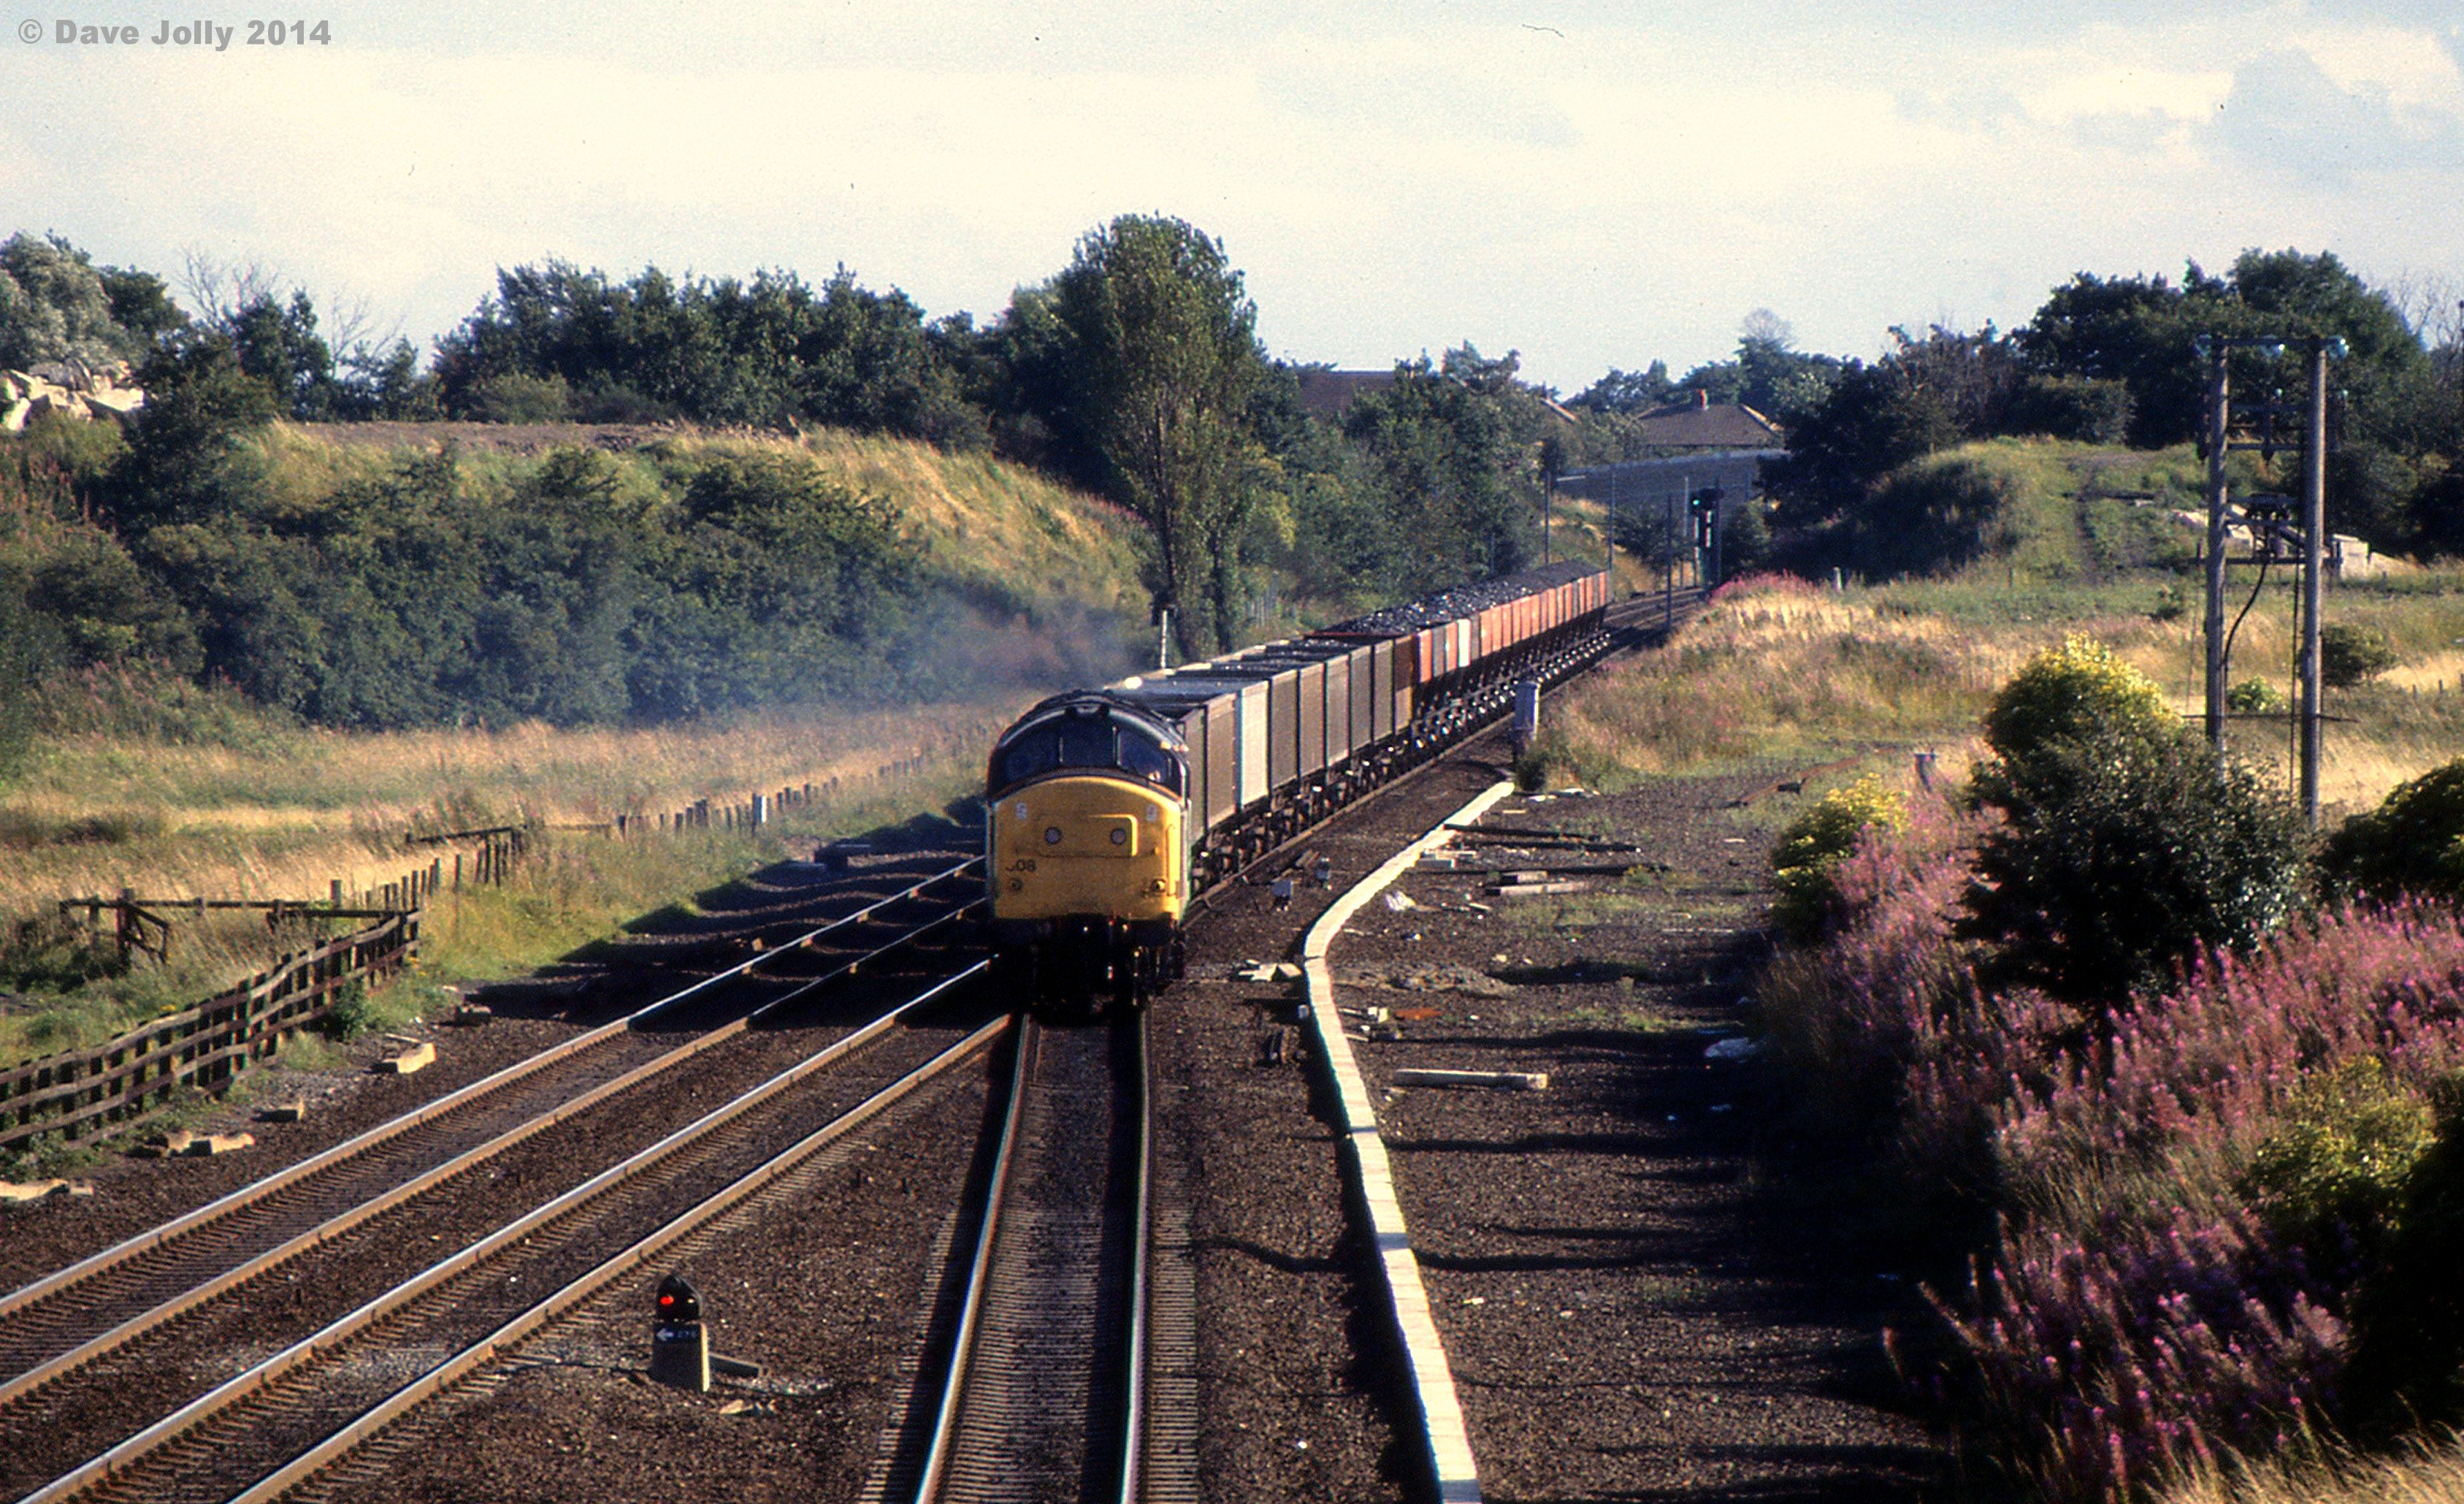 37308 crossing Ouston Junction with 6S67 1452 Speedlink Coal from Healey Mills to Gartcosh 19/08/1988. Photo copyright Dave Jolly